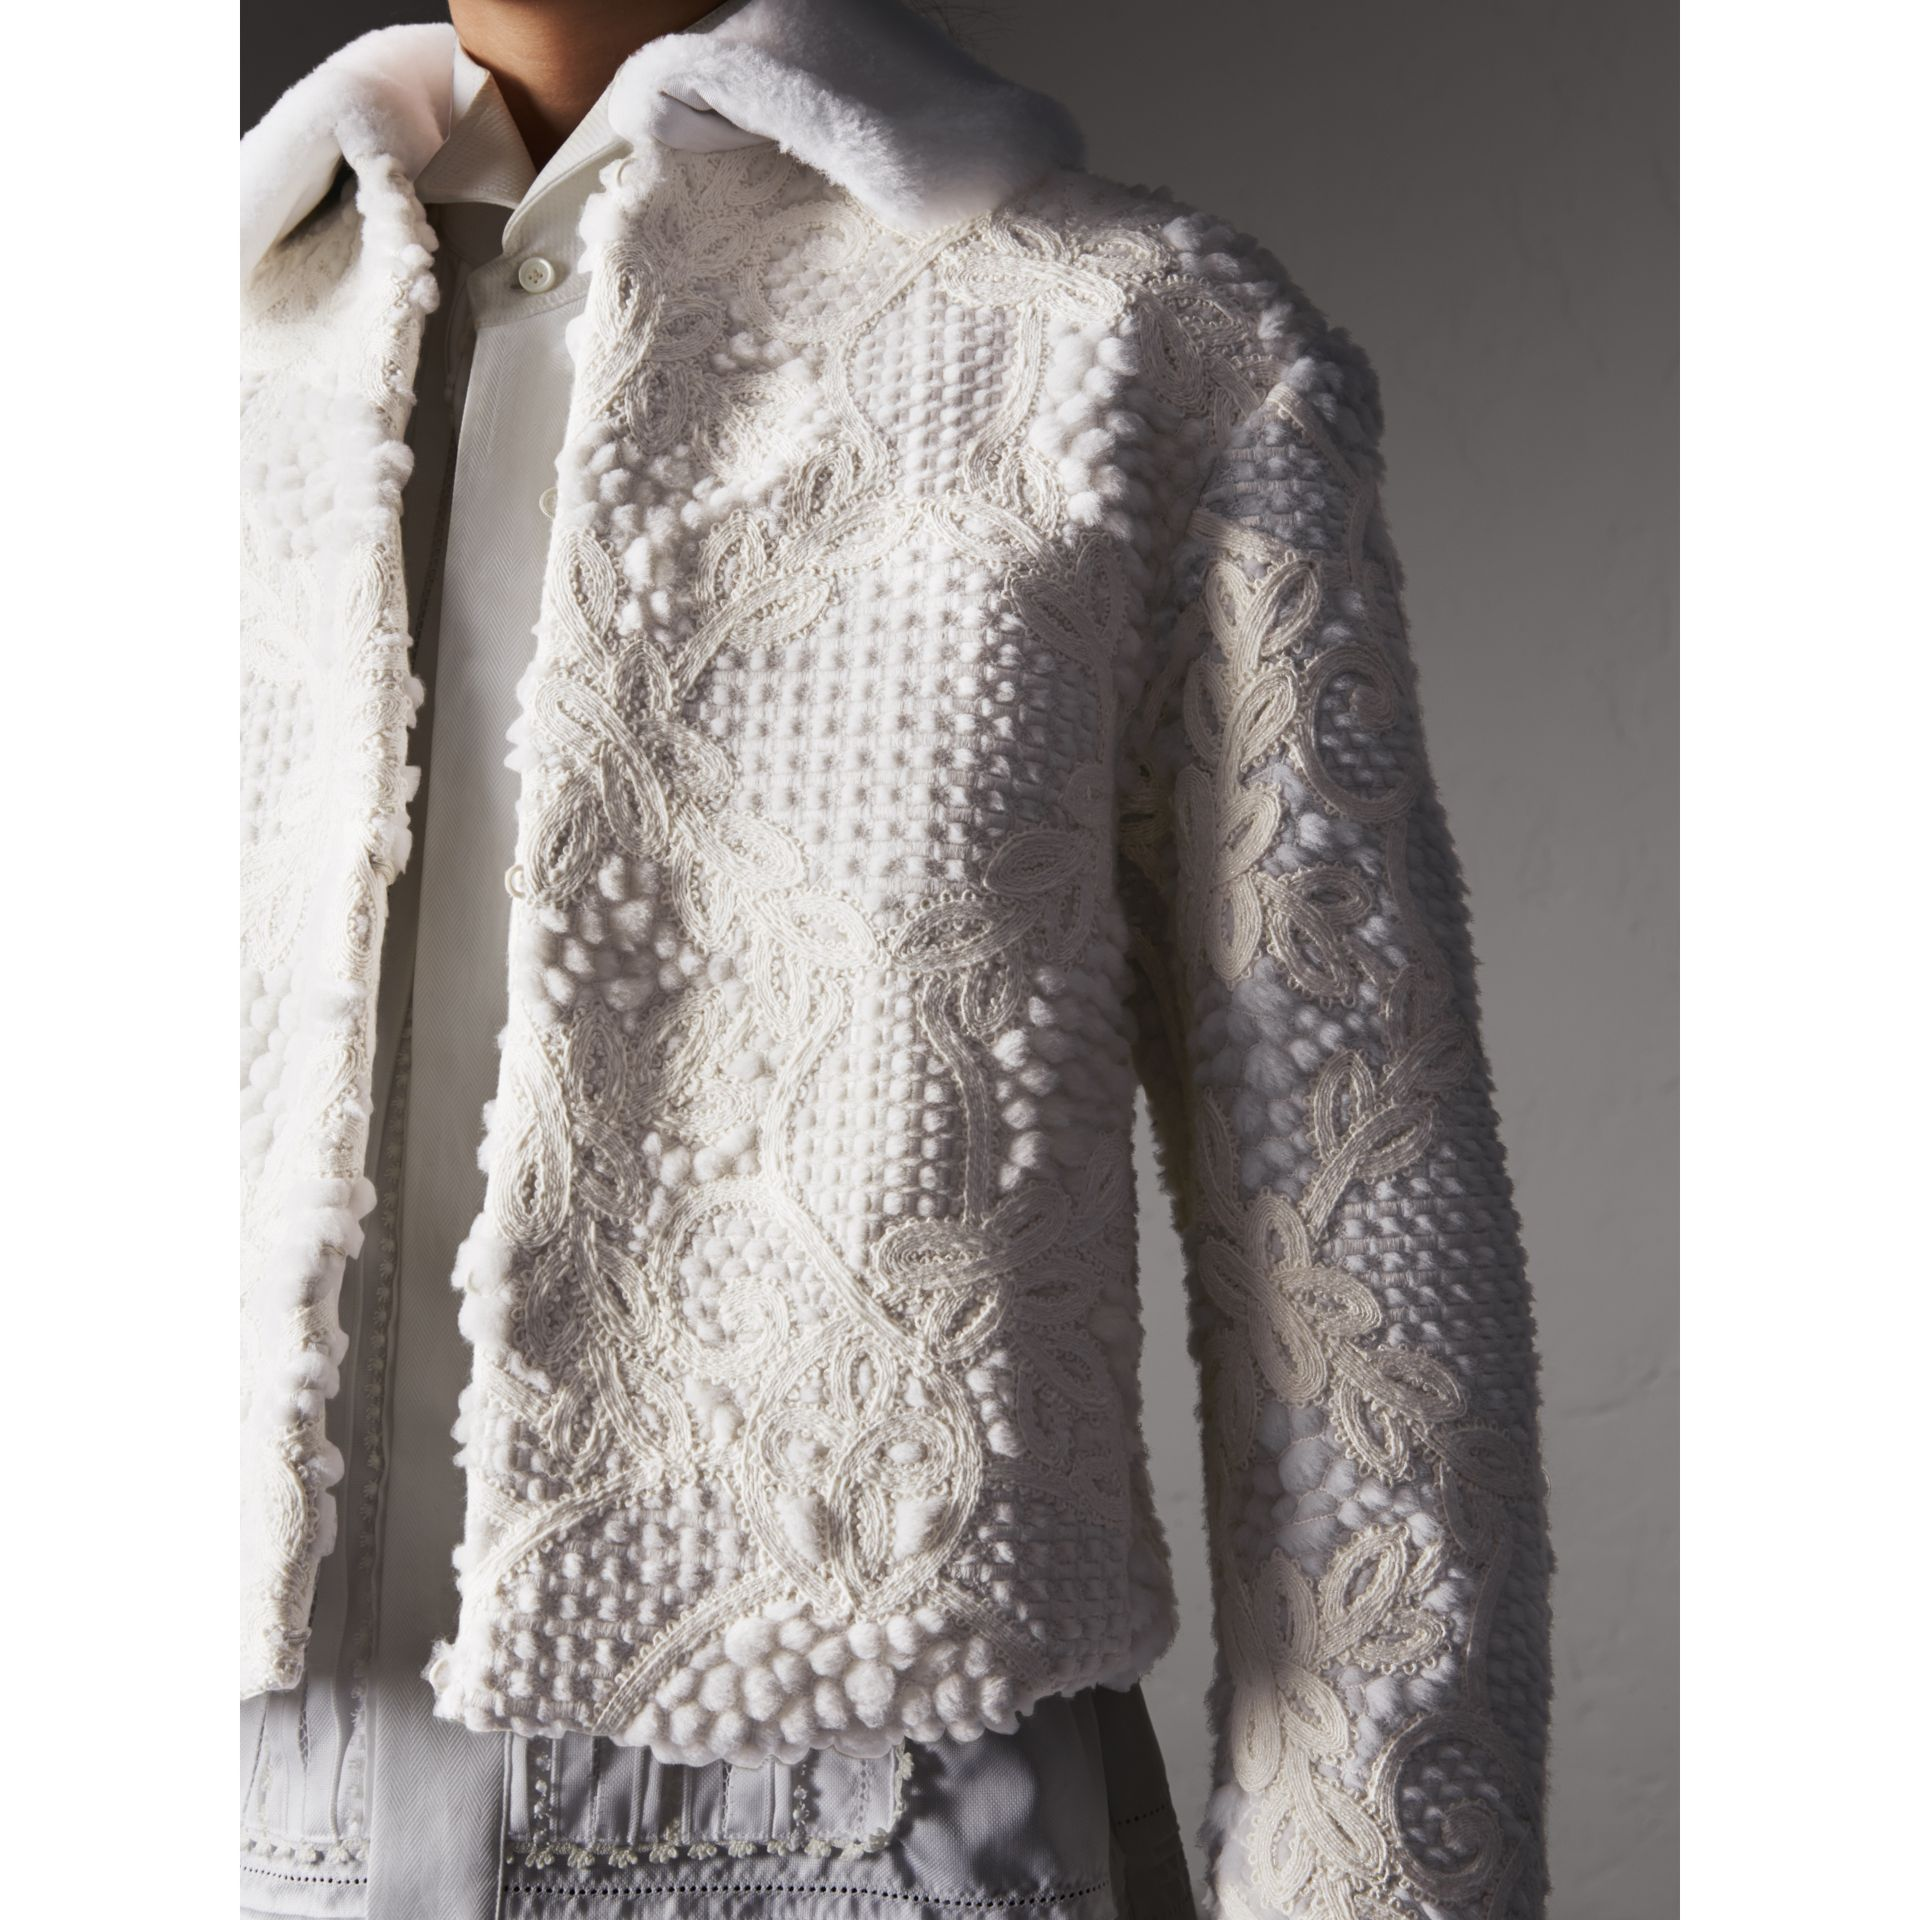 Macramé Lace-embellished Shearling Jacket in White - Women | Burberry Australia - gallery image 4